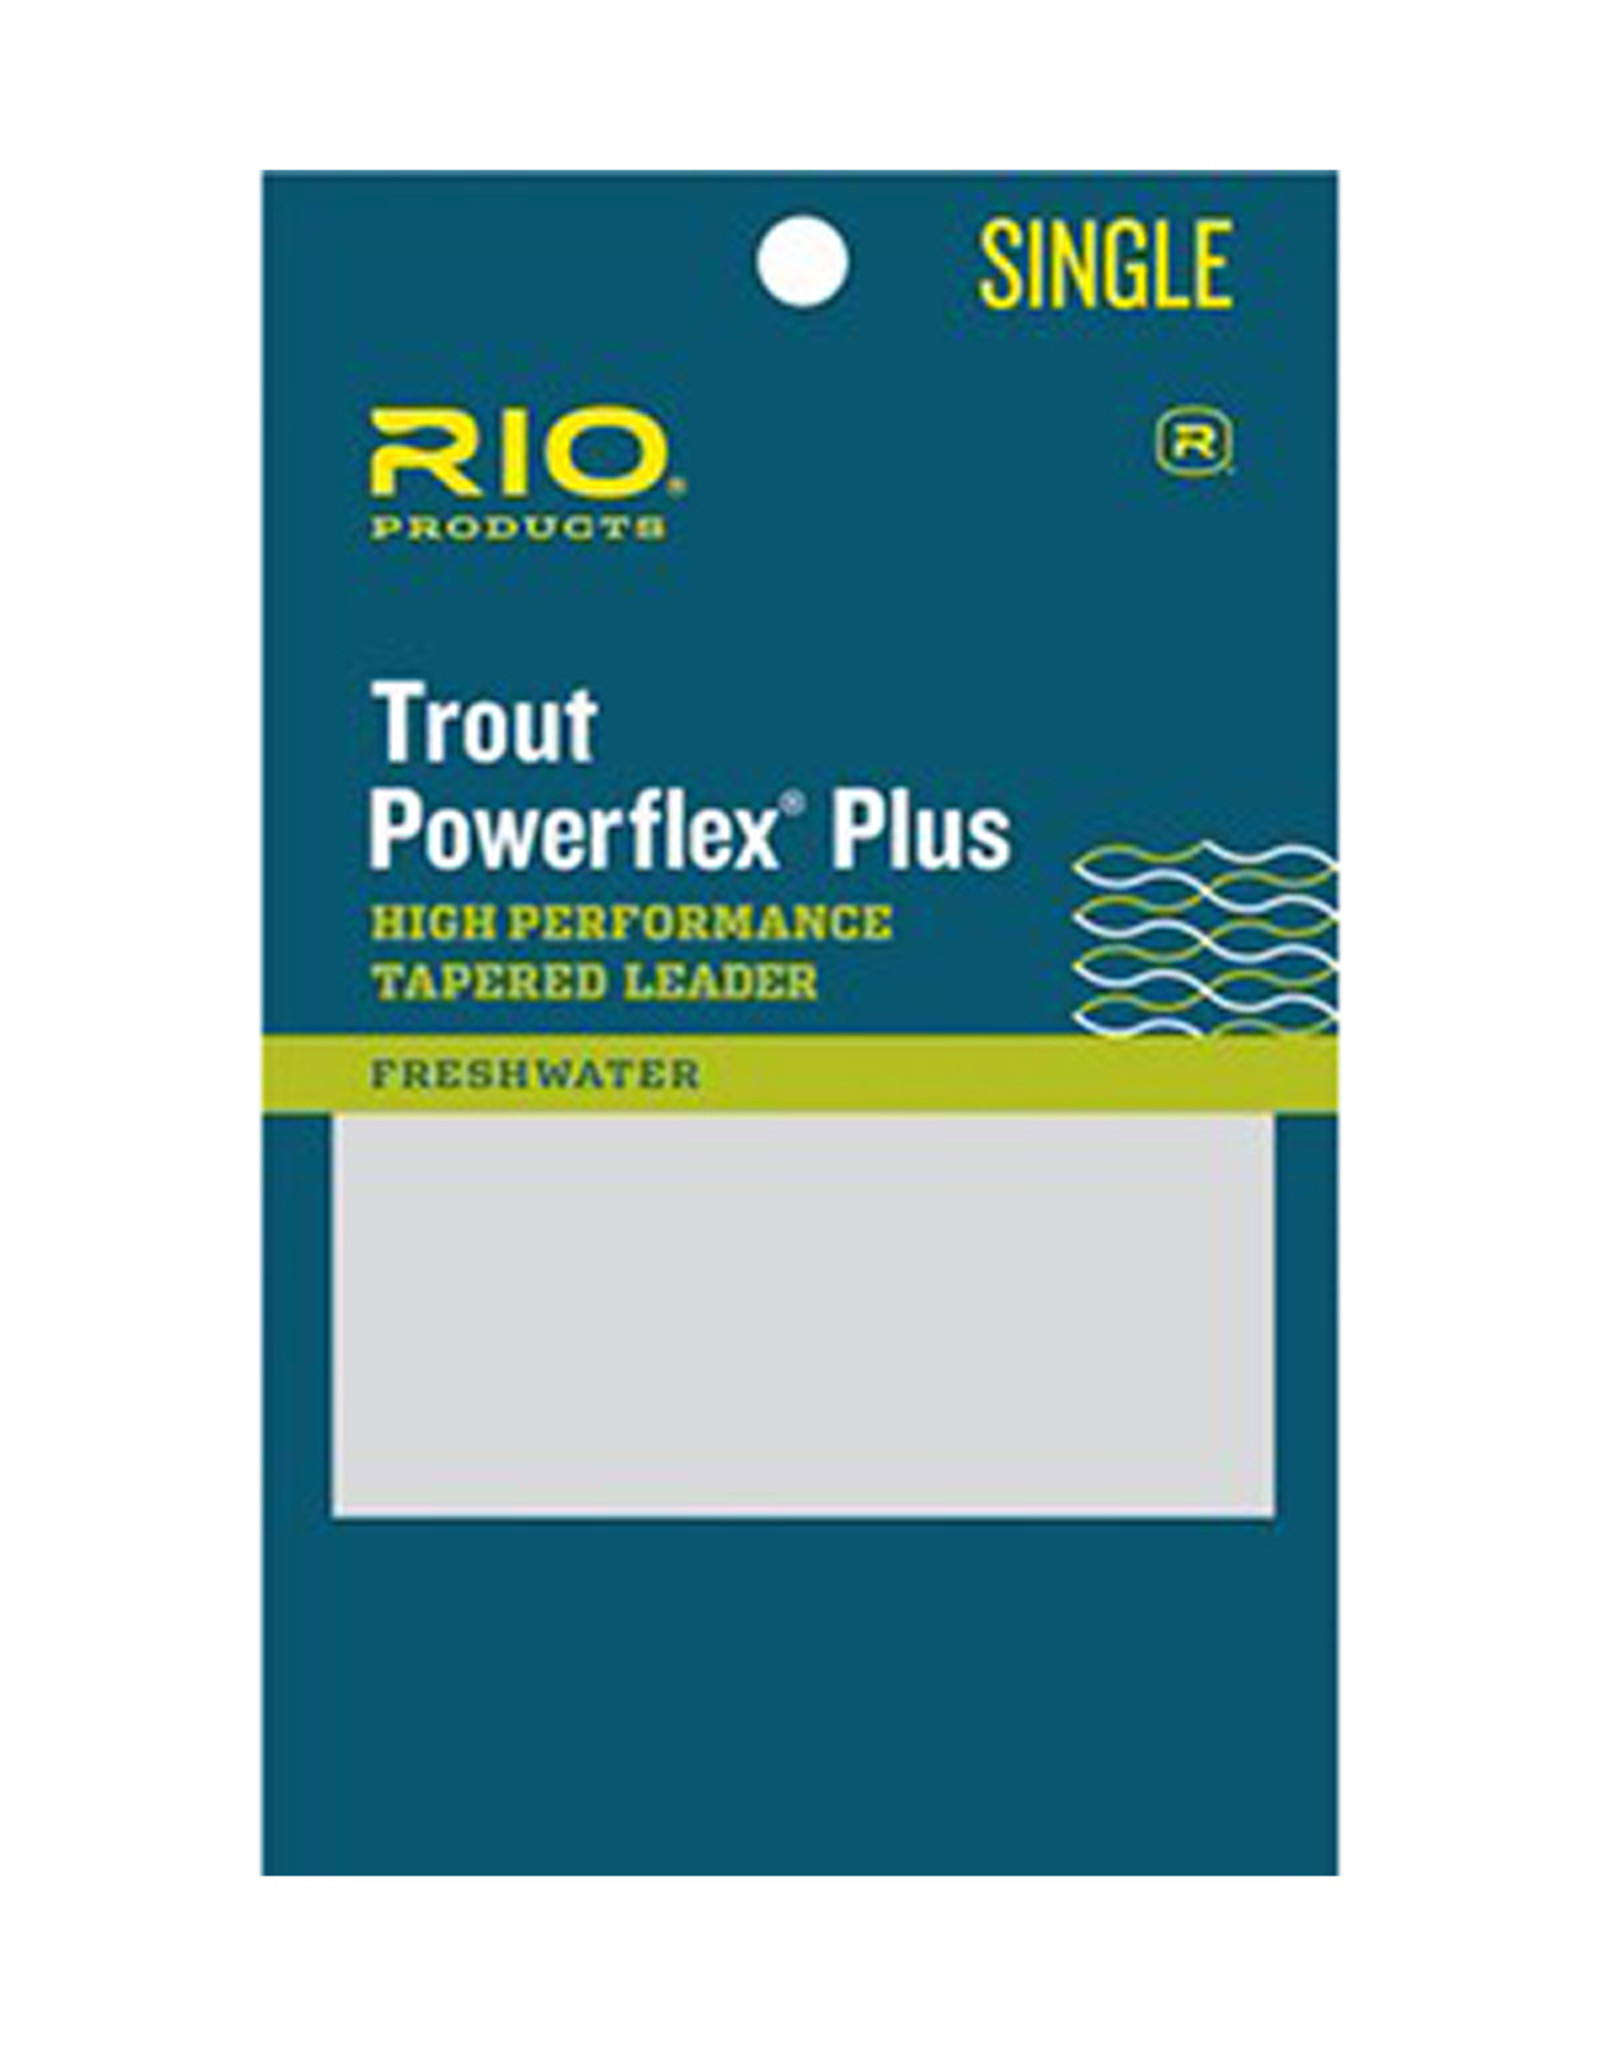 RIO Products Powerflex Plus 9ft Leader: Single